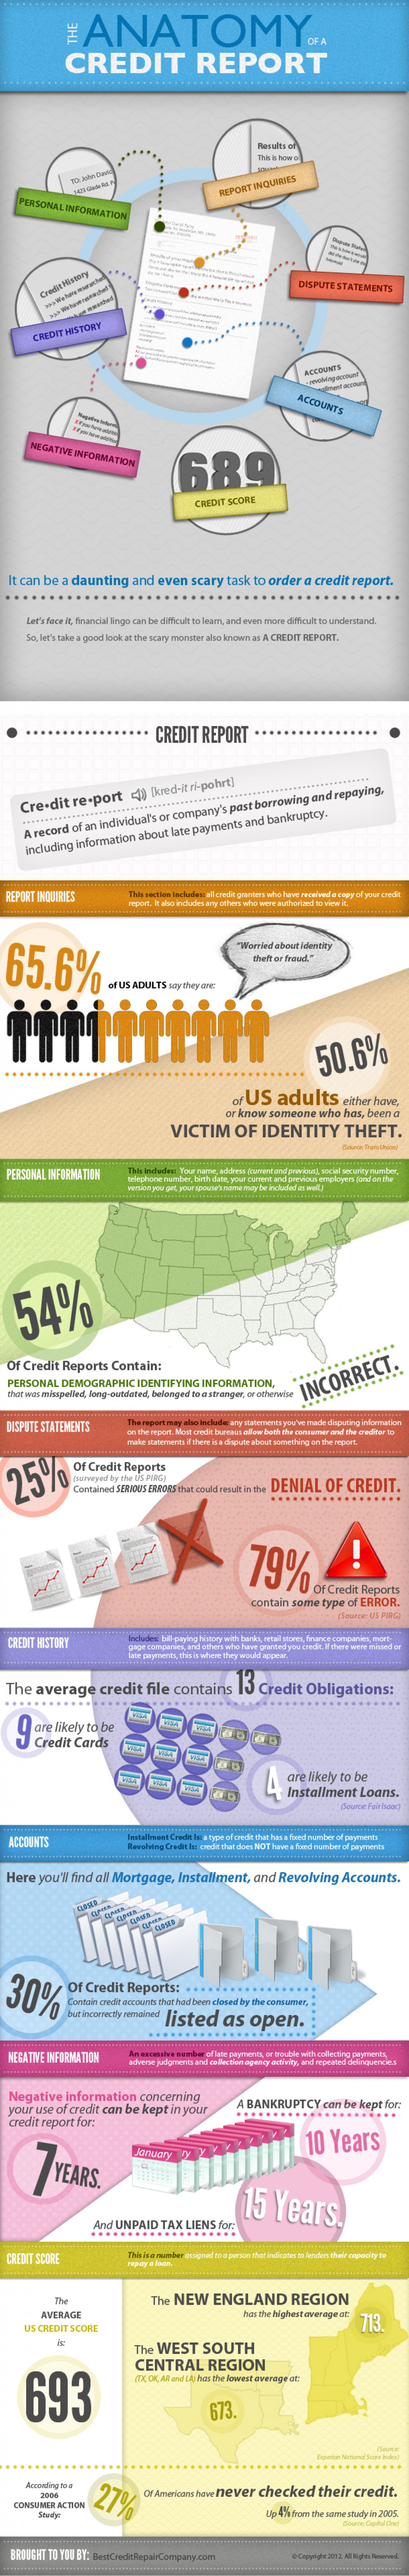 The Anatomy of a Credit Report  Infographic